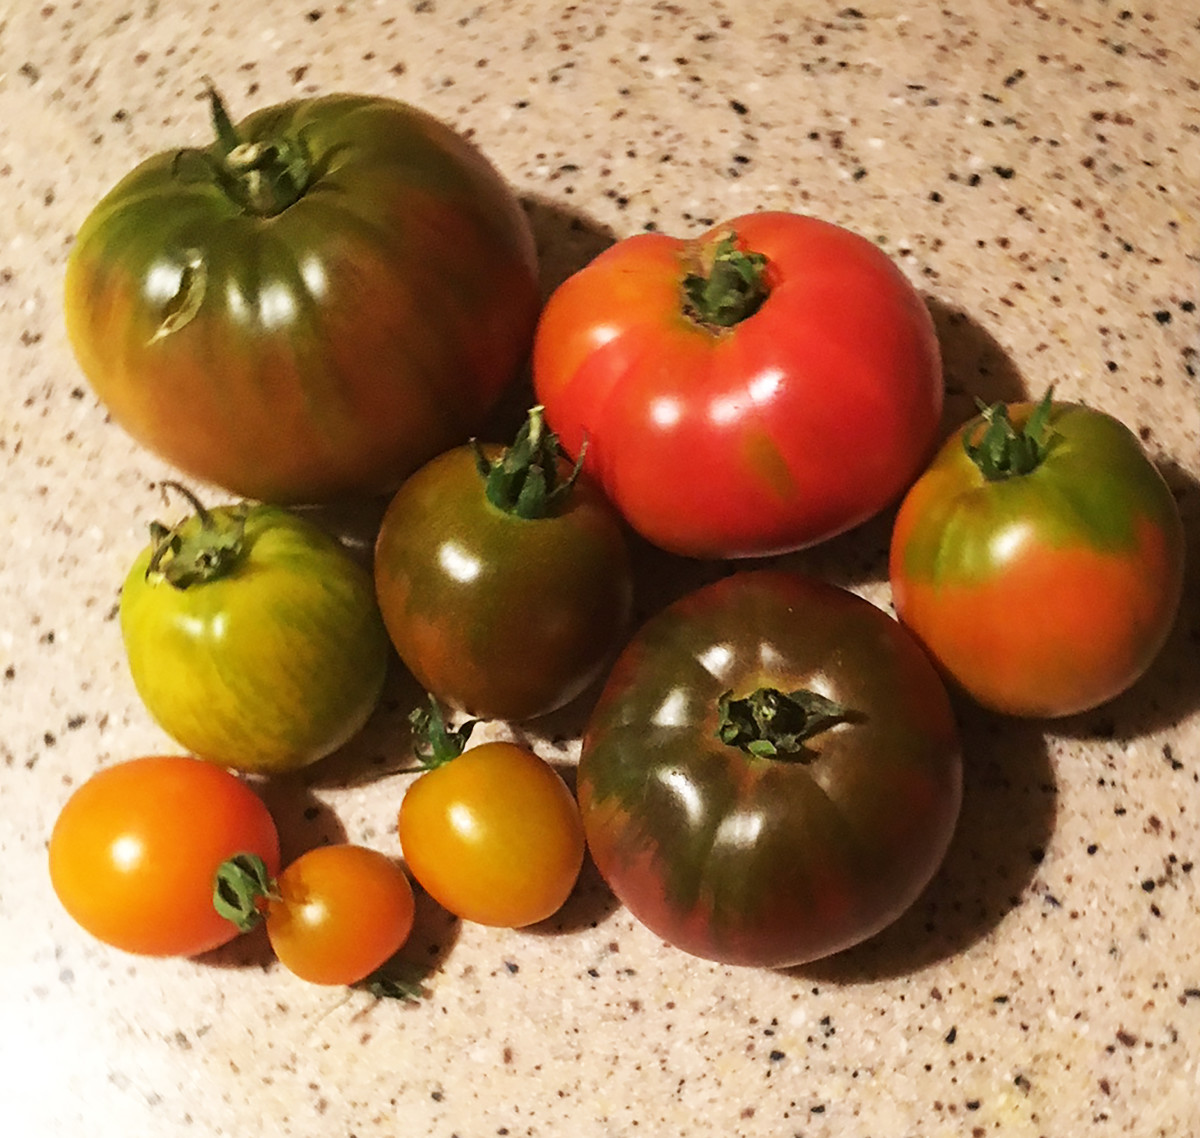 Cloning Tomatoes the Easy Way